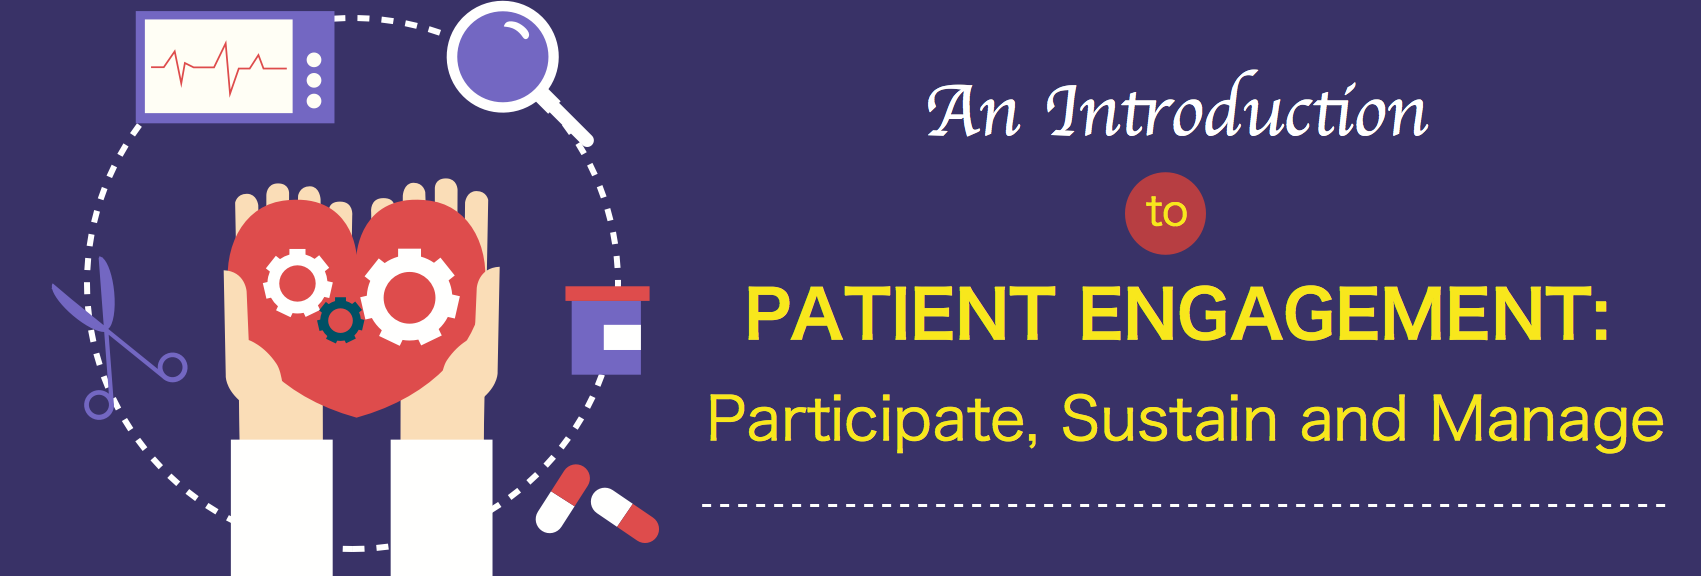 an introduction to patient engagement participate sustain and manage banner